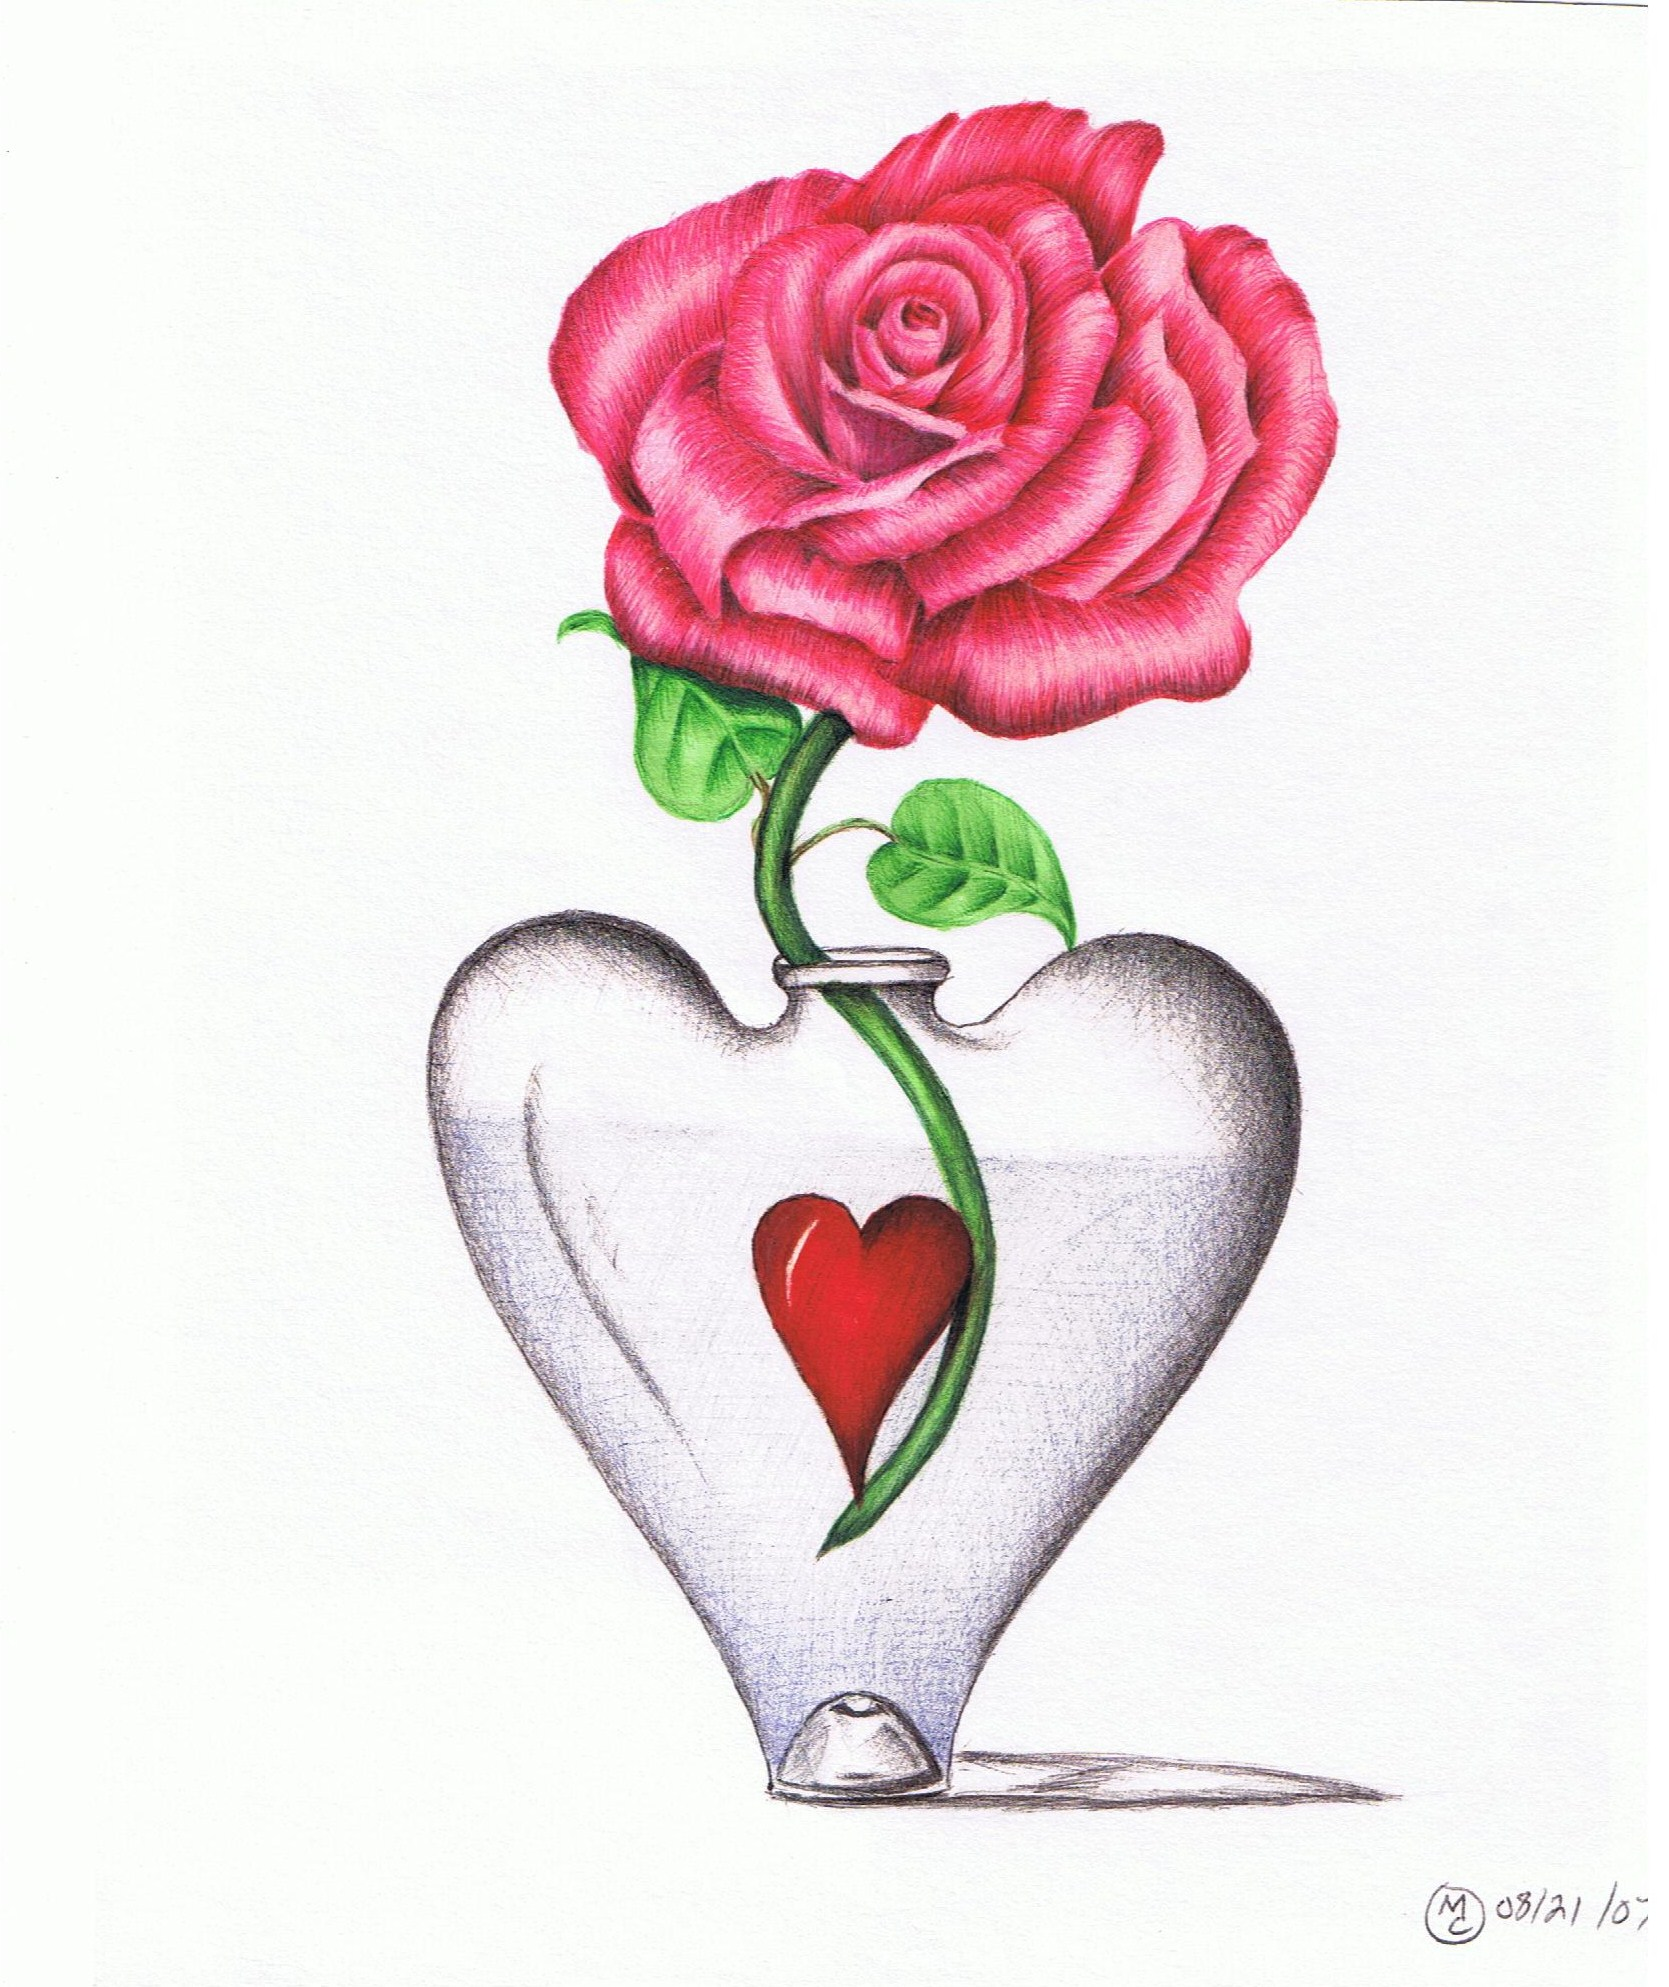 Roses And Heart Drawing - Cliparts.co